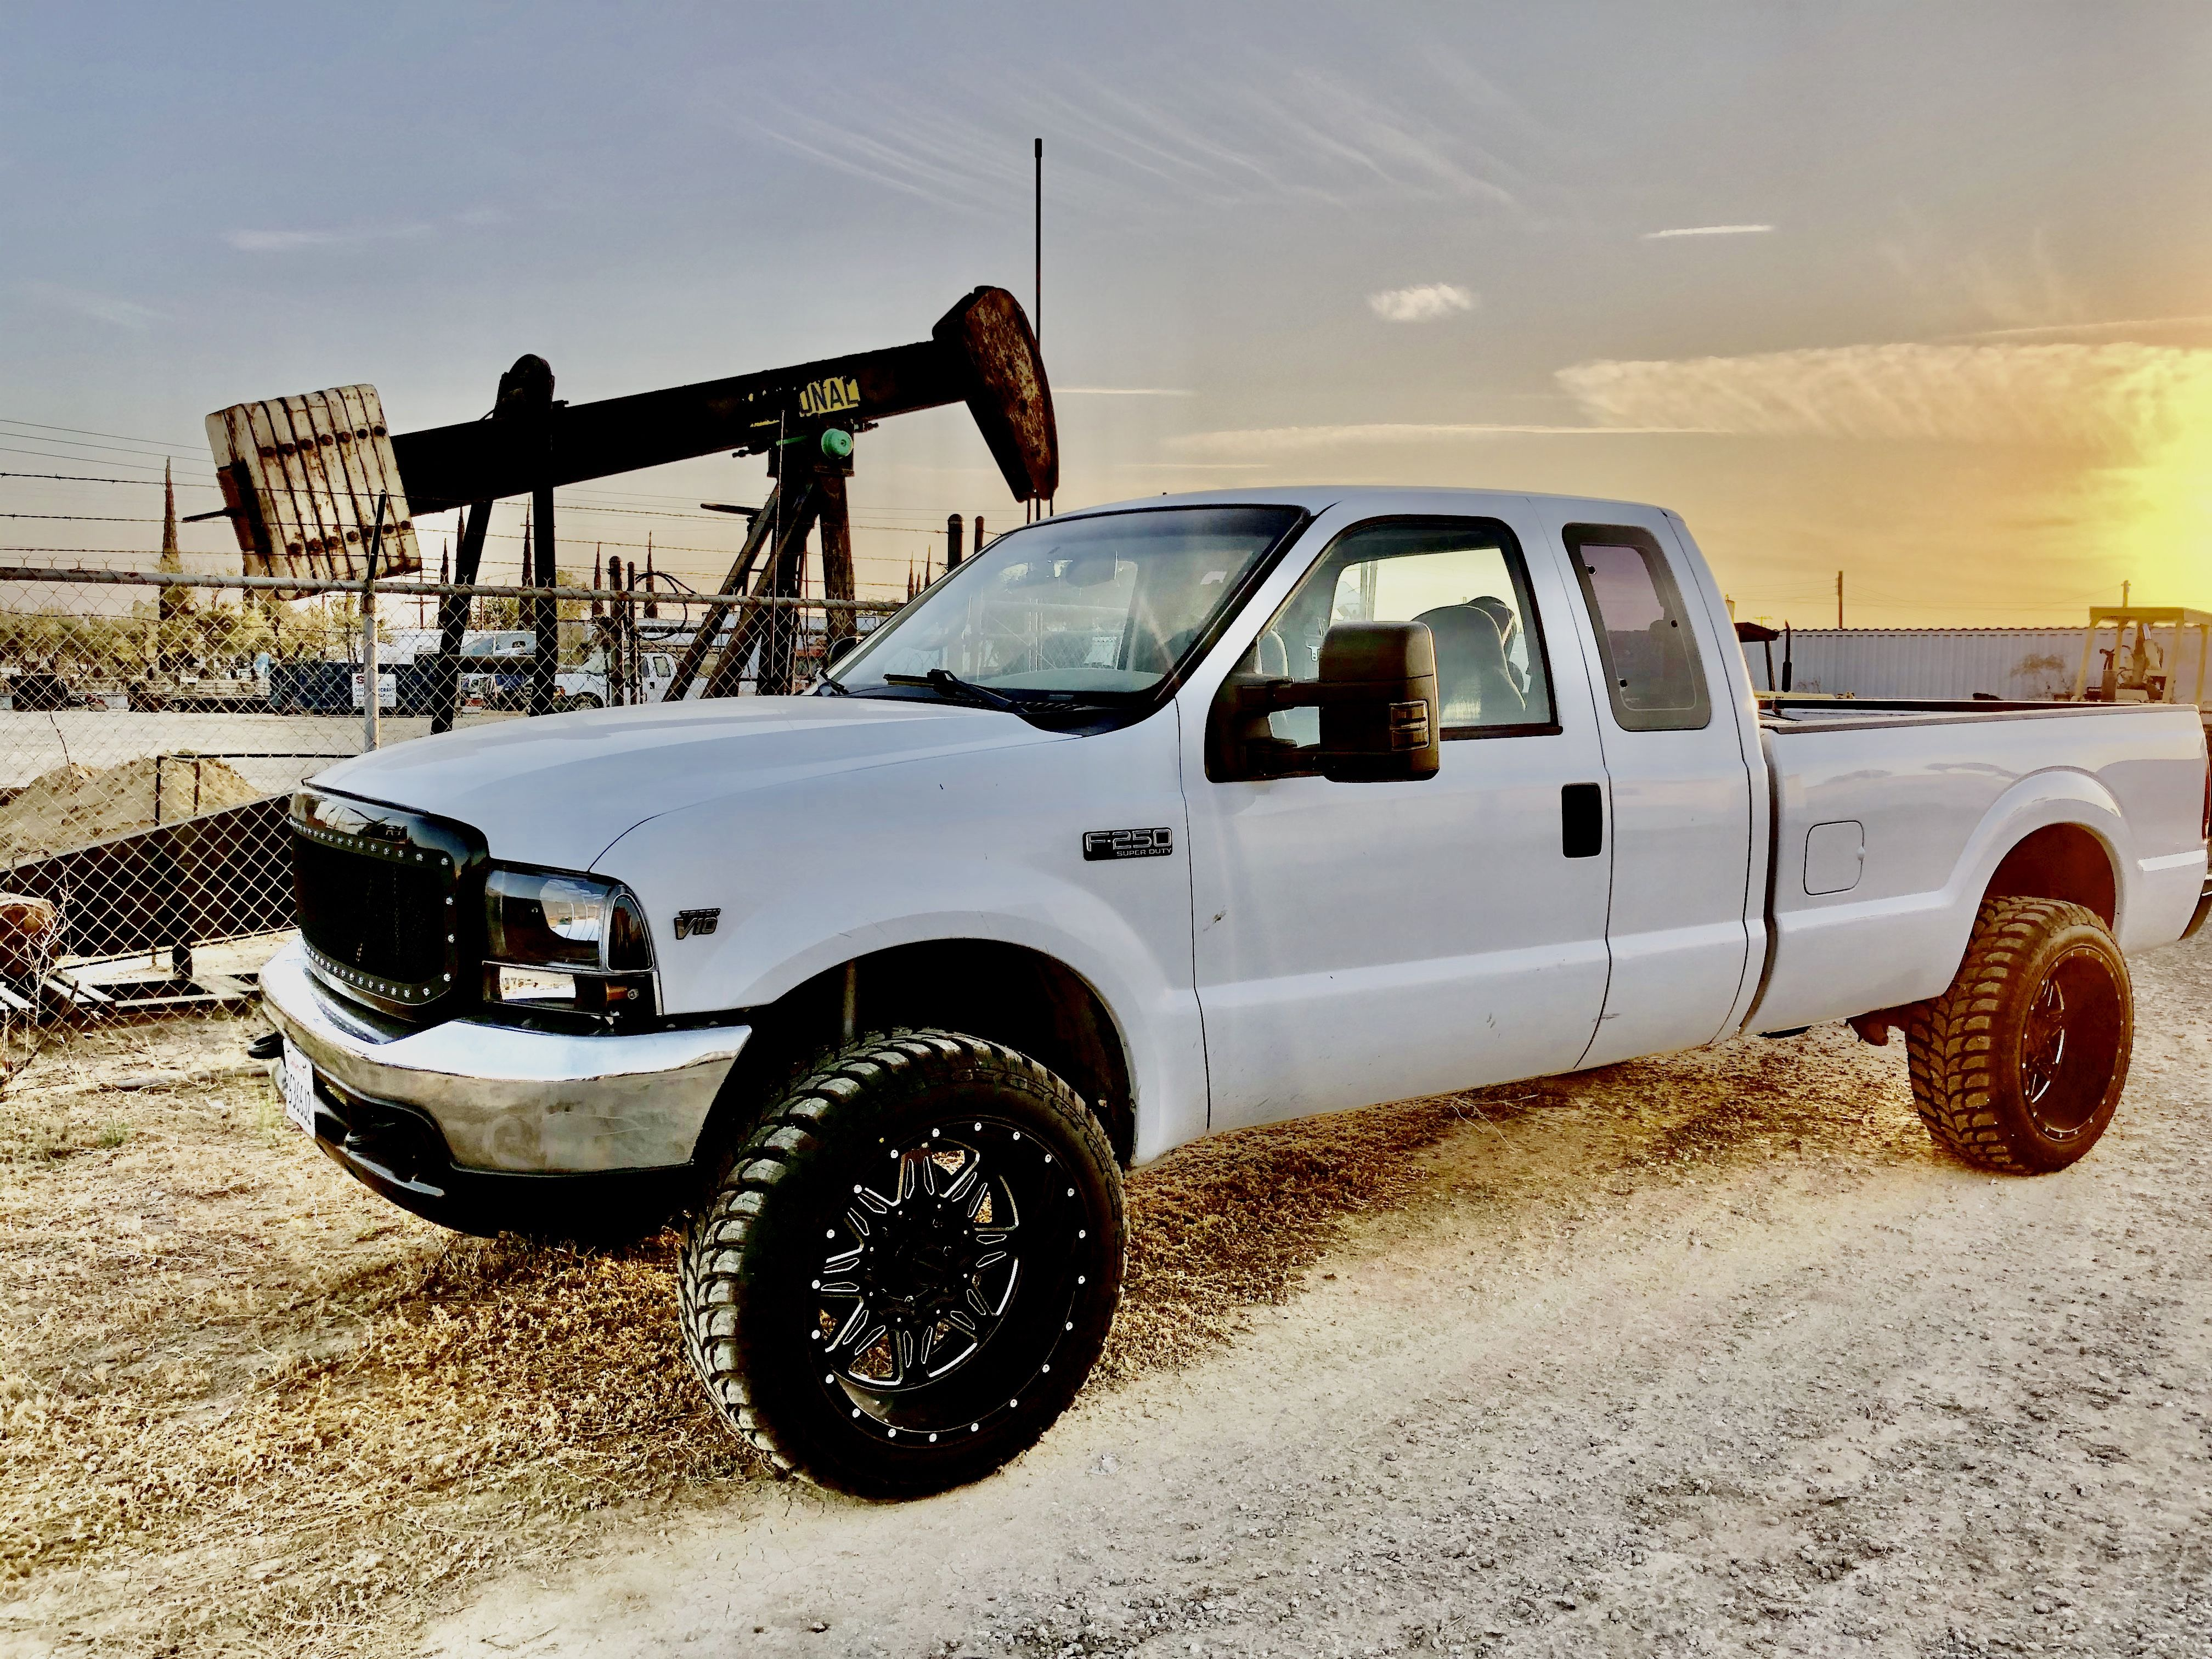 99 F250 Super Duty With A Level Kit 22 Inch Wheels And 35 Tires F250 Super Duty F250 Ford F250